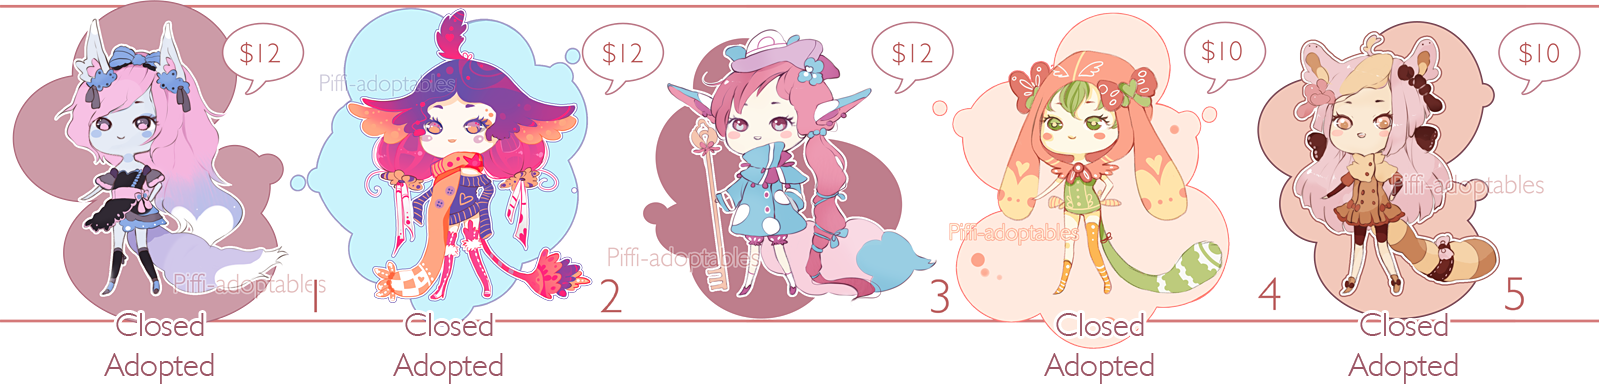 [CLOSED] ADOPT 13 - Little Adopt set by Piffi-adoptables